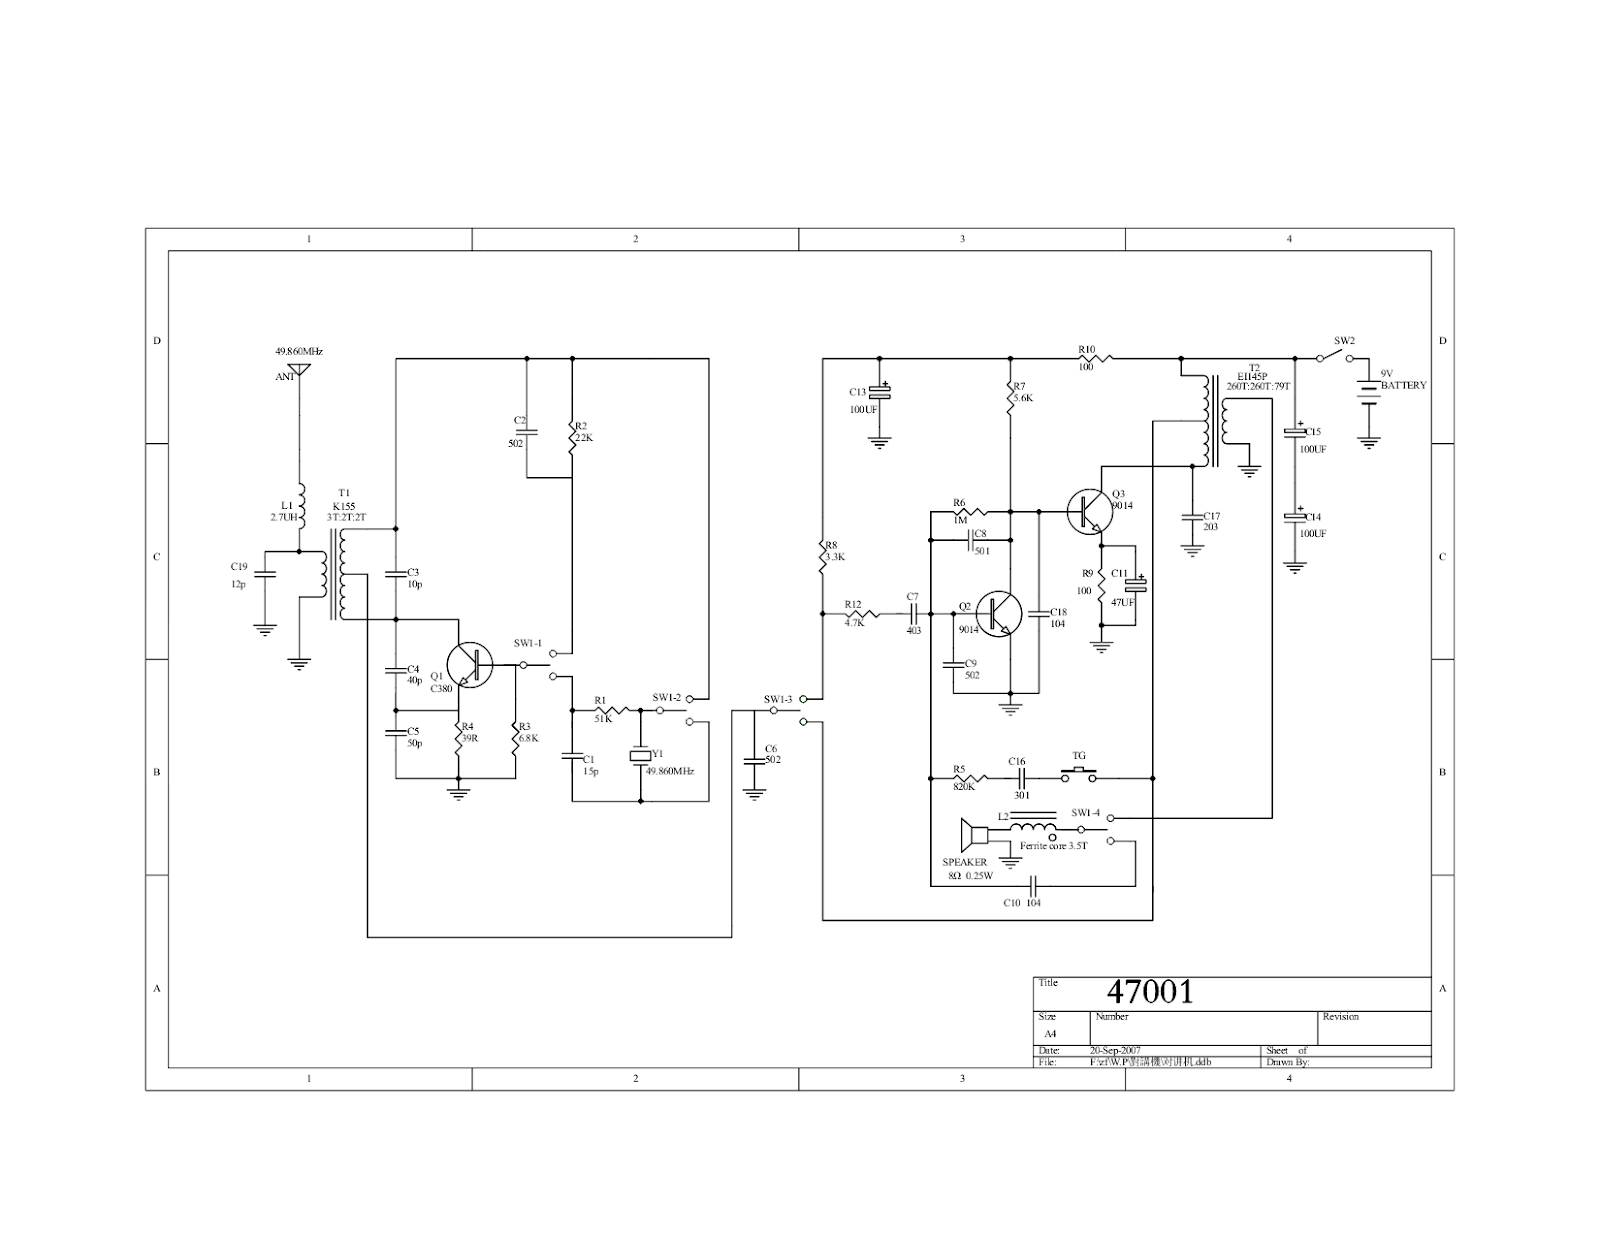 Transistor Walkie Talkie Circuit Diagram